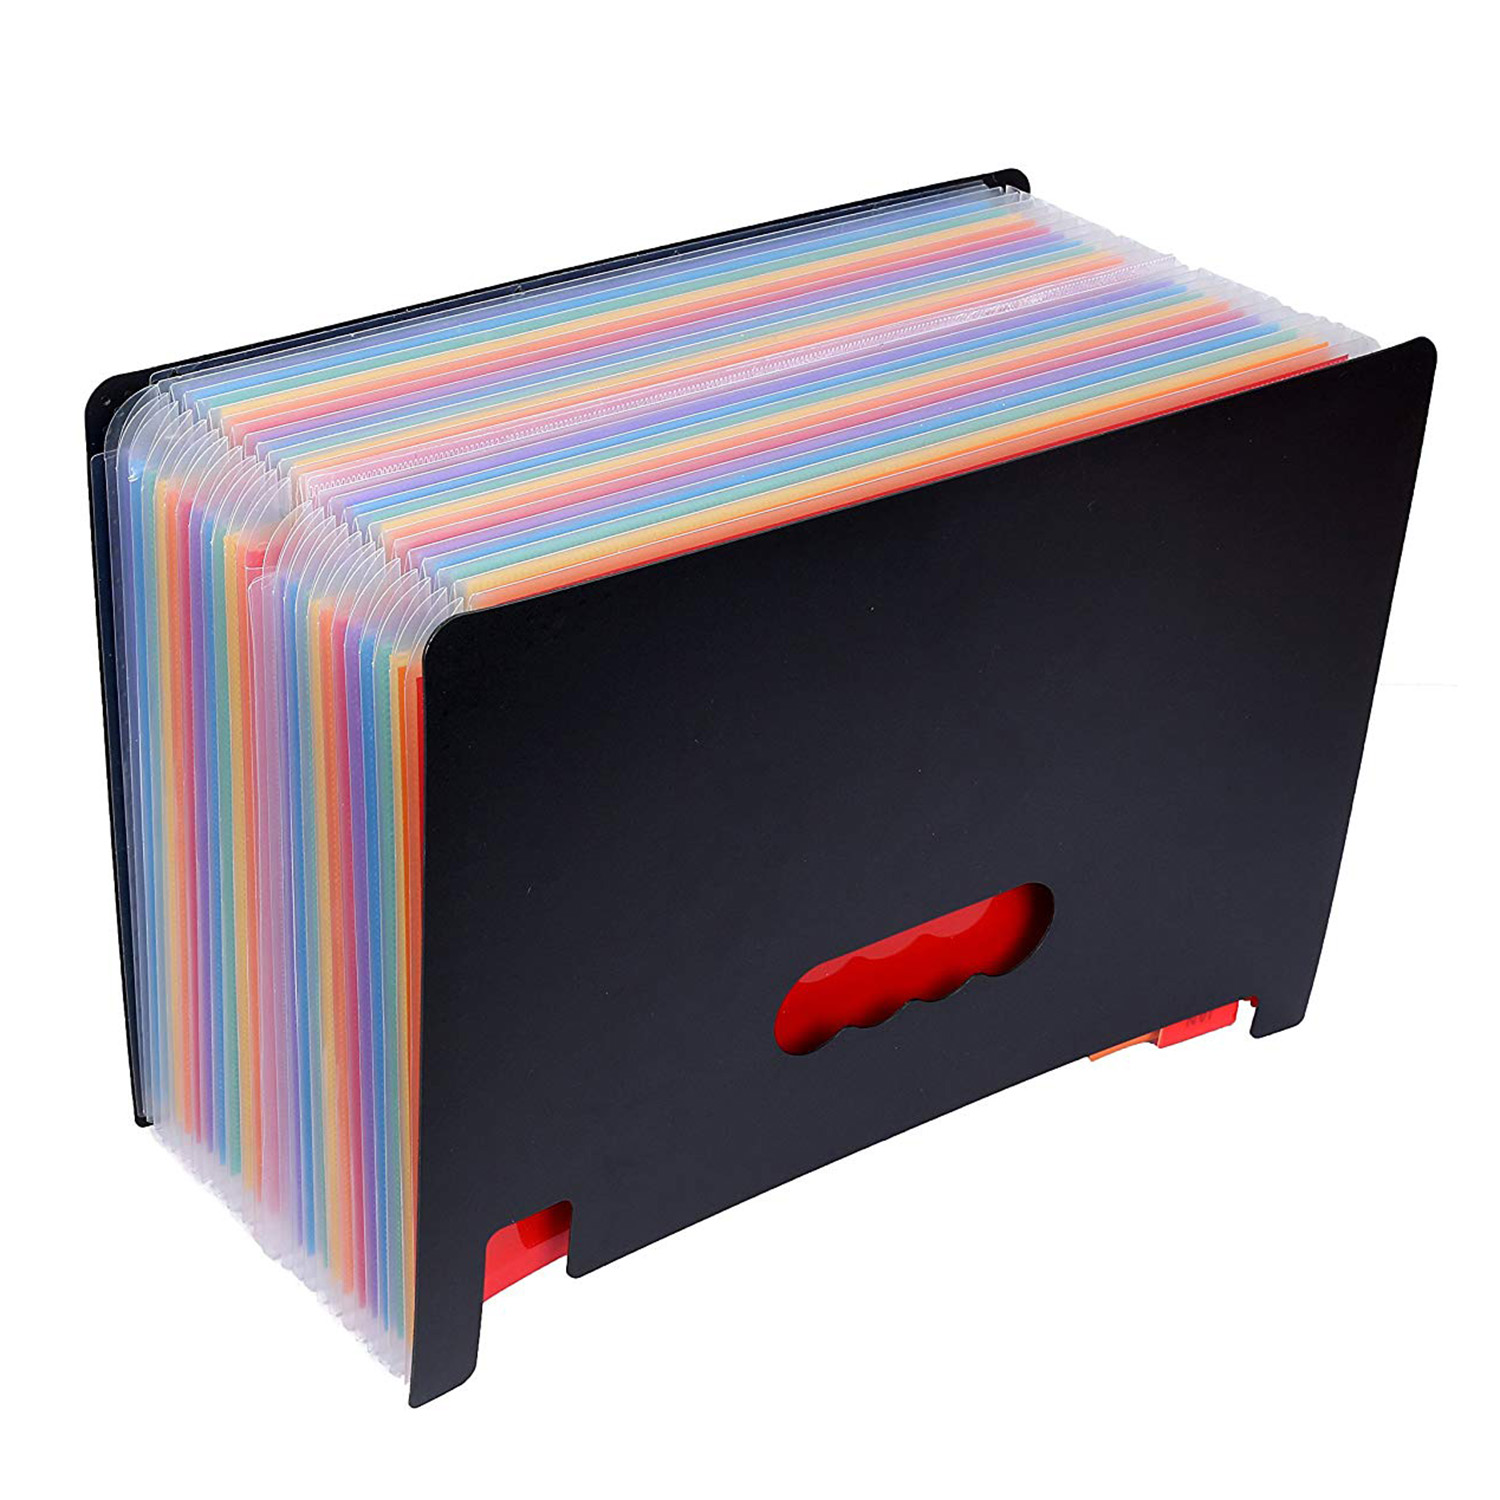 MIRUI Pockets Expanding File Folder Large Space Design A4 Filing Folders Box File Business Home Office Document Accordion File